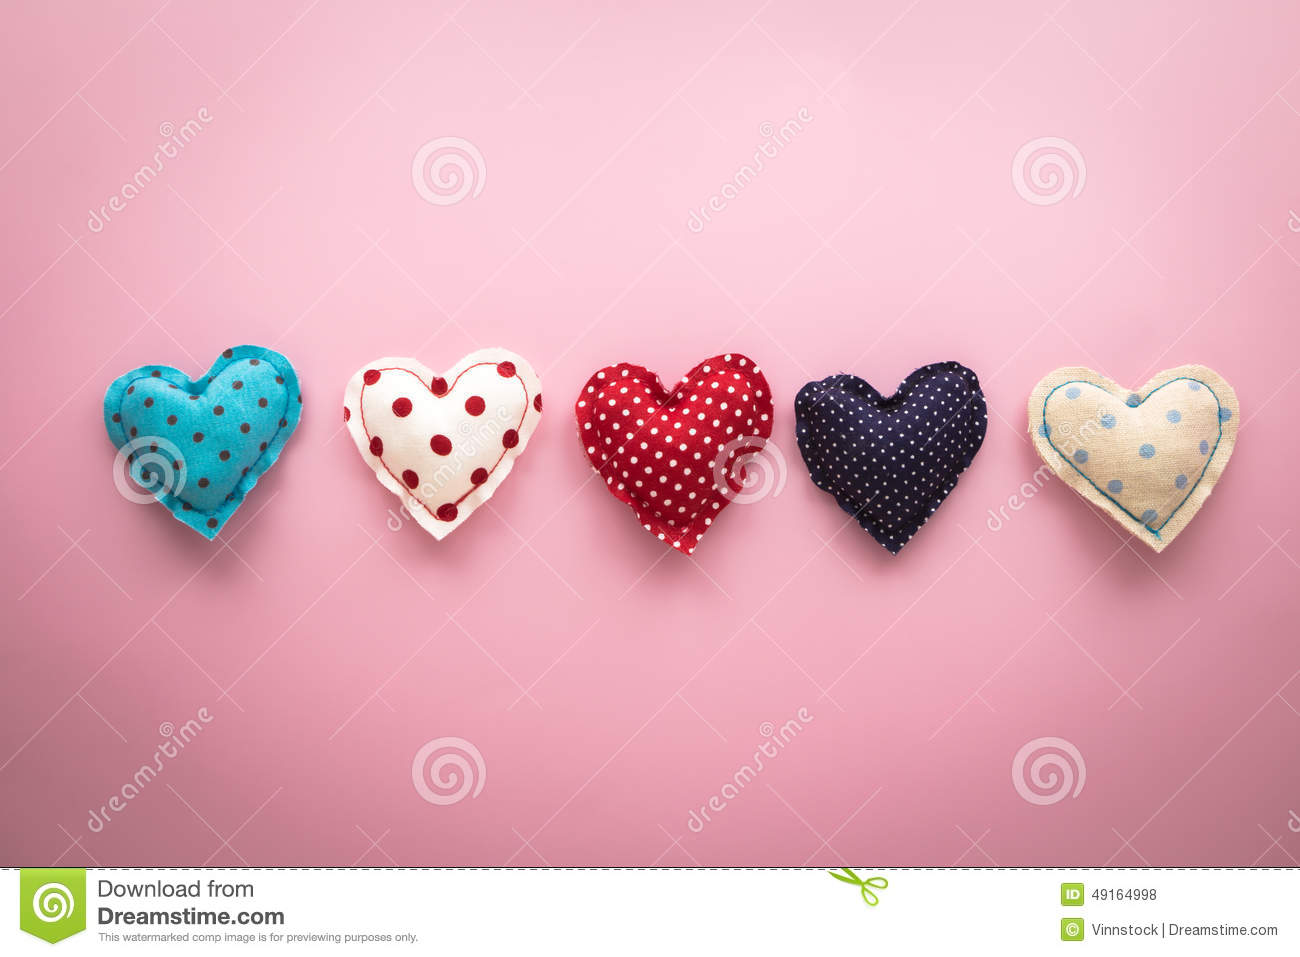 Cute Love Hearts Handmade Crafts For Valentine S Day Stock Photo